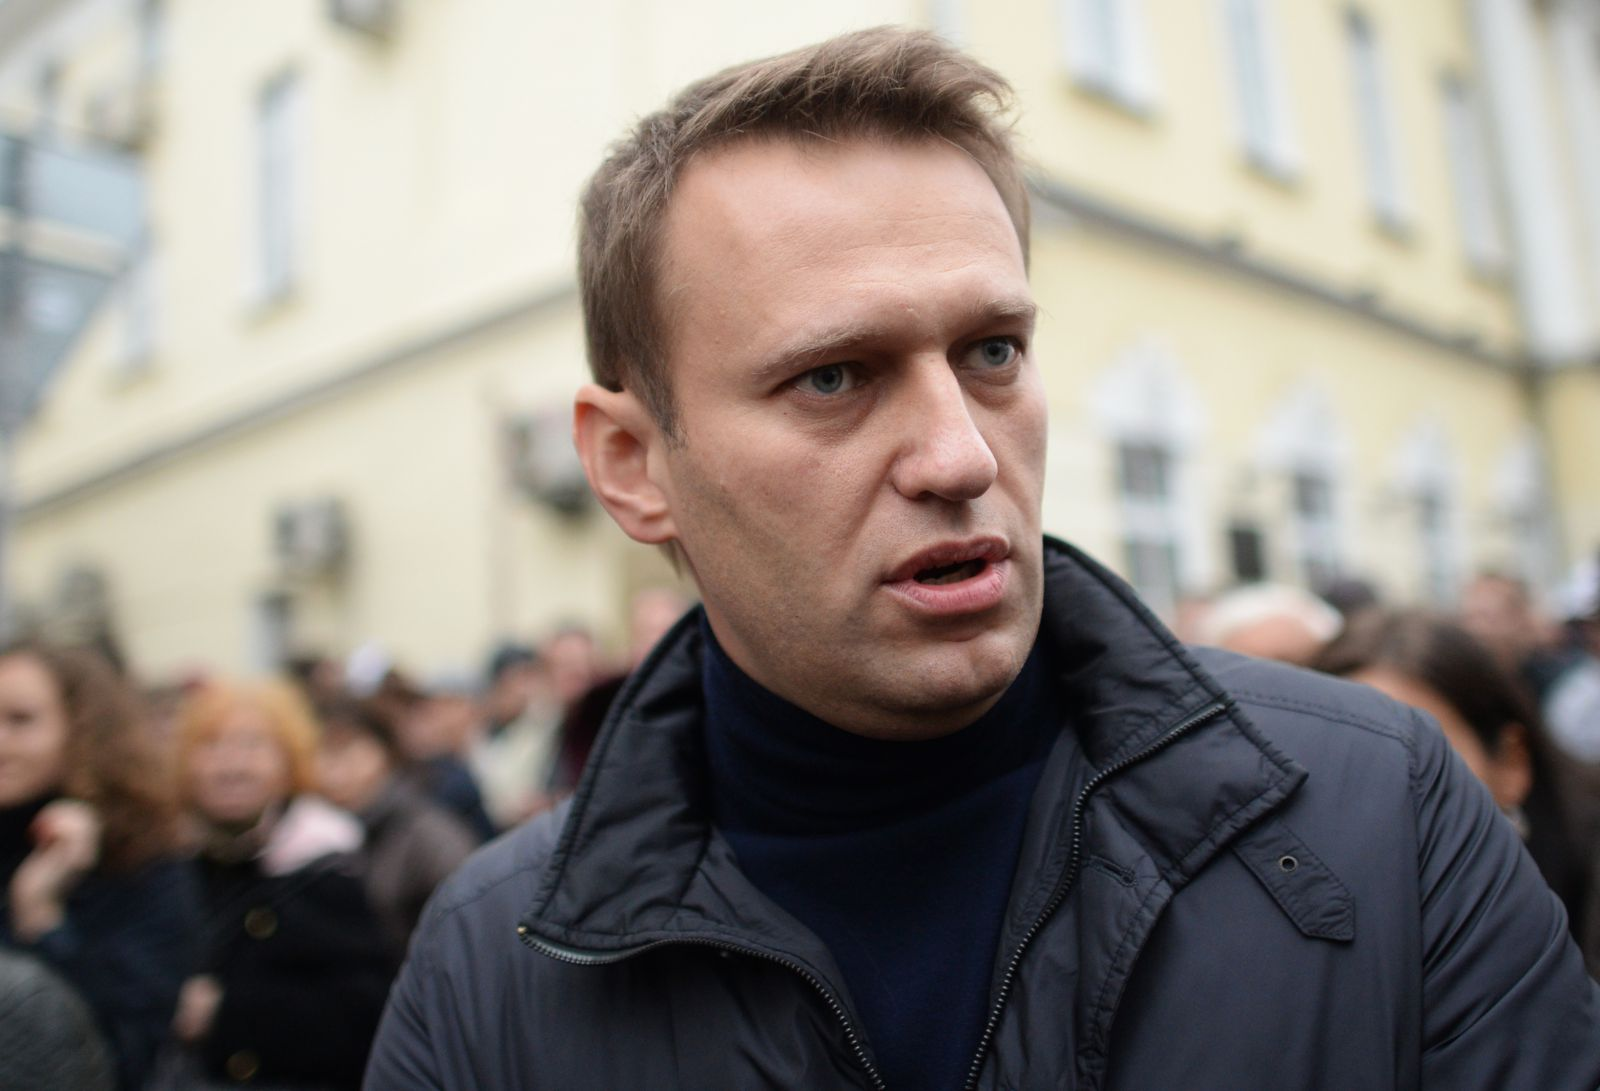 PACE won't approve any resolutions on Navalny case